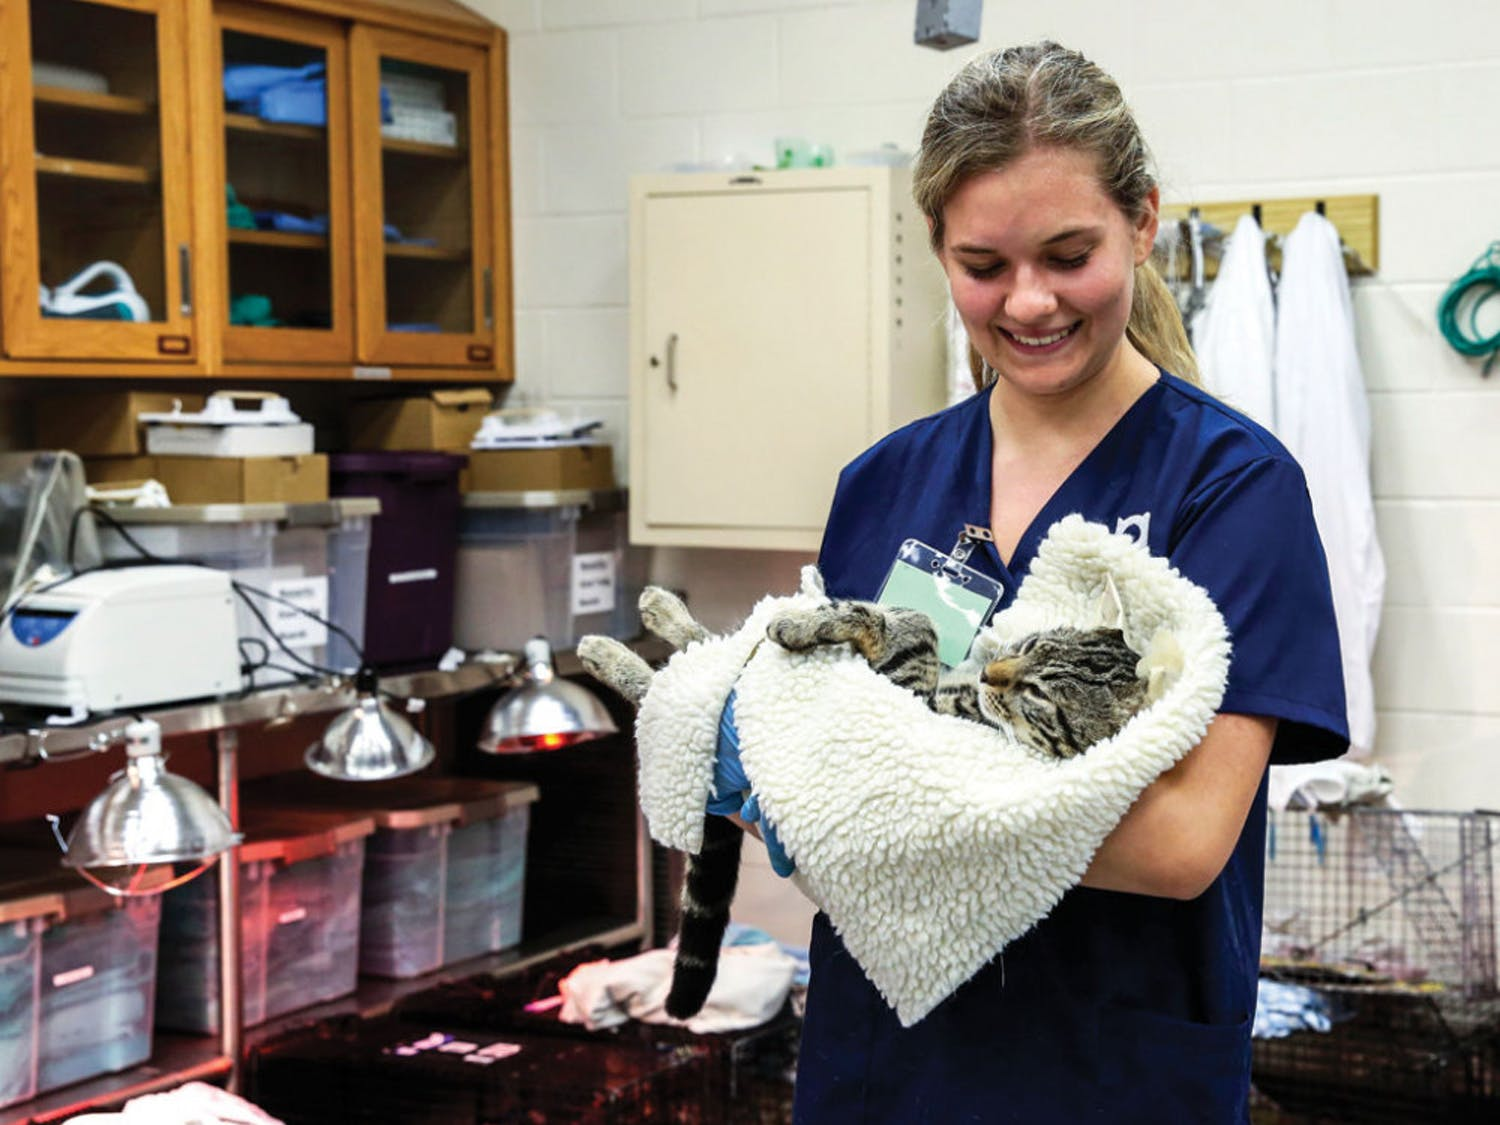 Every month, an average of 100 volunteers help spay, neuter and vaccinate an average of 200 cats per event.